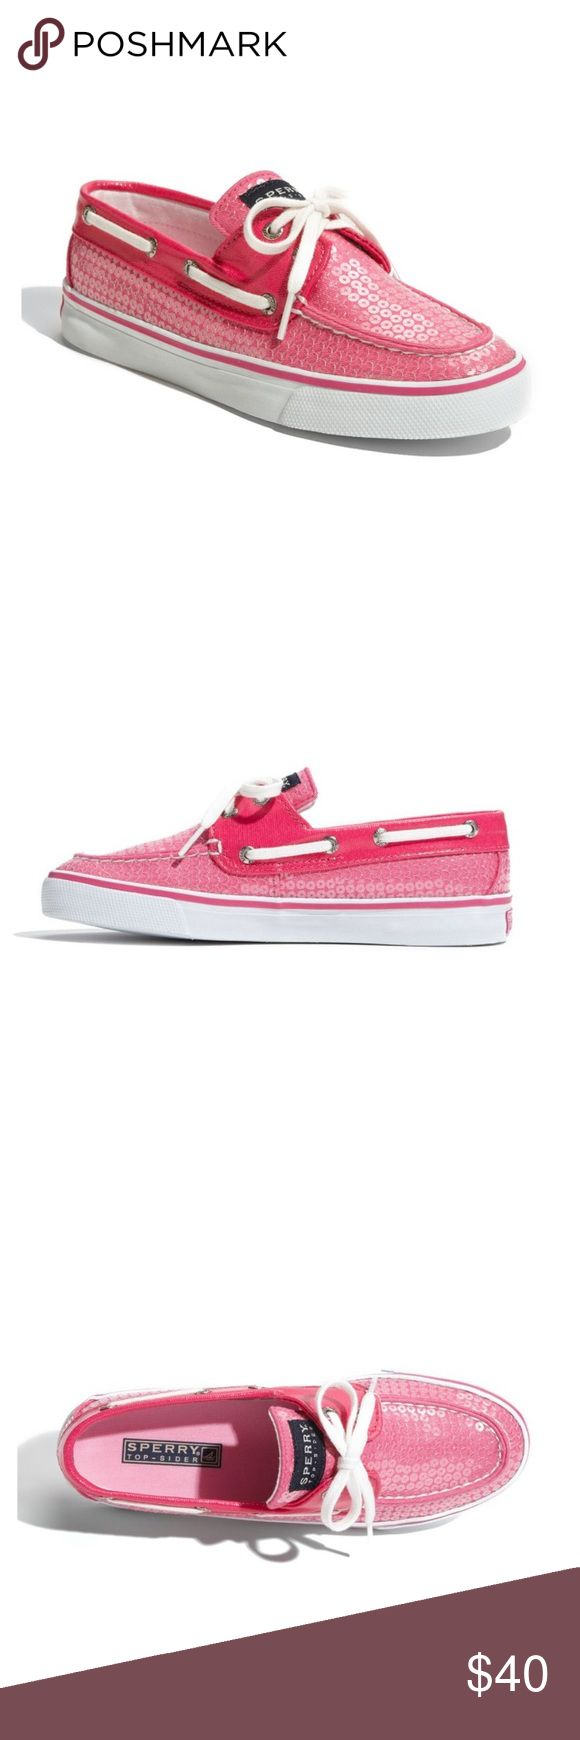 Sperry Top-Sider Pink Sequins Bahama Boat Shoe Used - In good condition  Who says casual has to be ordinary? Add a touch of glam to a laid back look with flirty patterns, prints and colors that keep you looking fresh for any occasion. Dress up your daily style with our wide selection of trendy casuals. Sperry Top-Sider Shoes